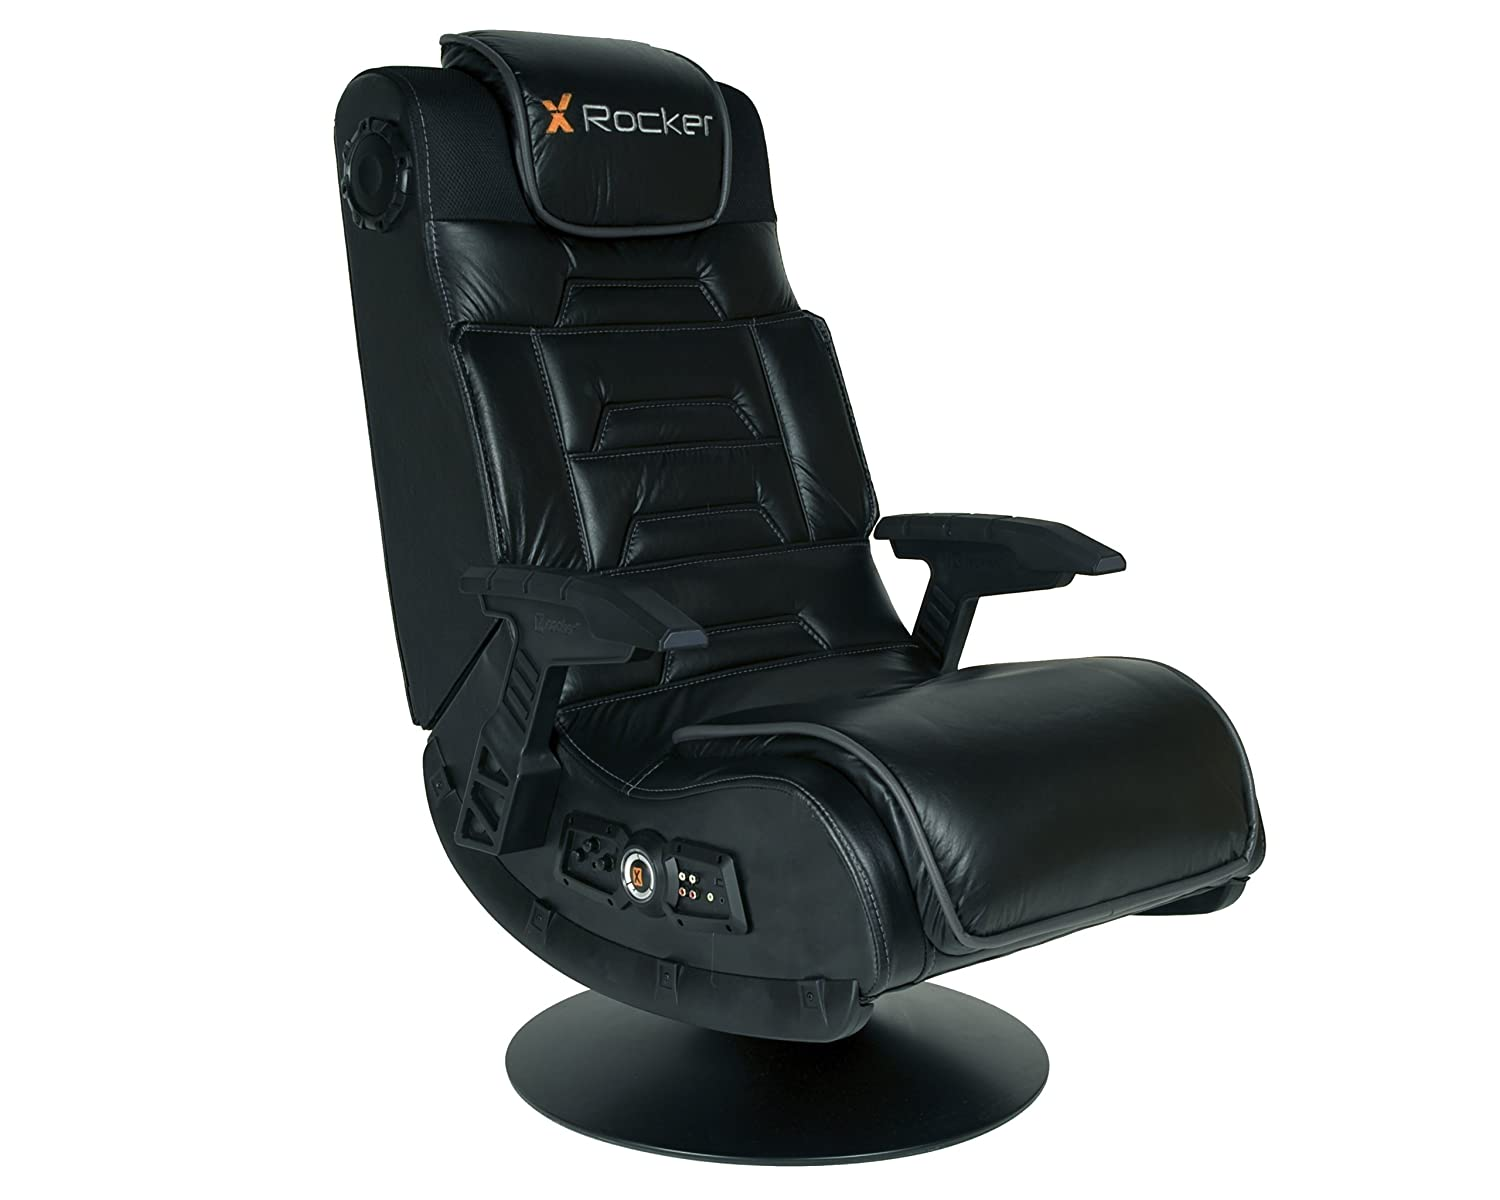 New x rocker pro video gaming chair tilting swivel base gamer home